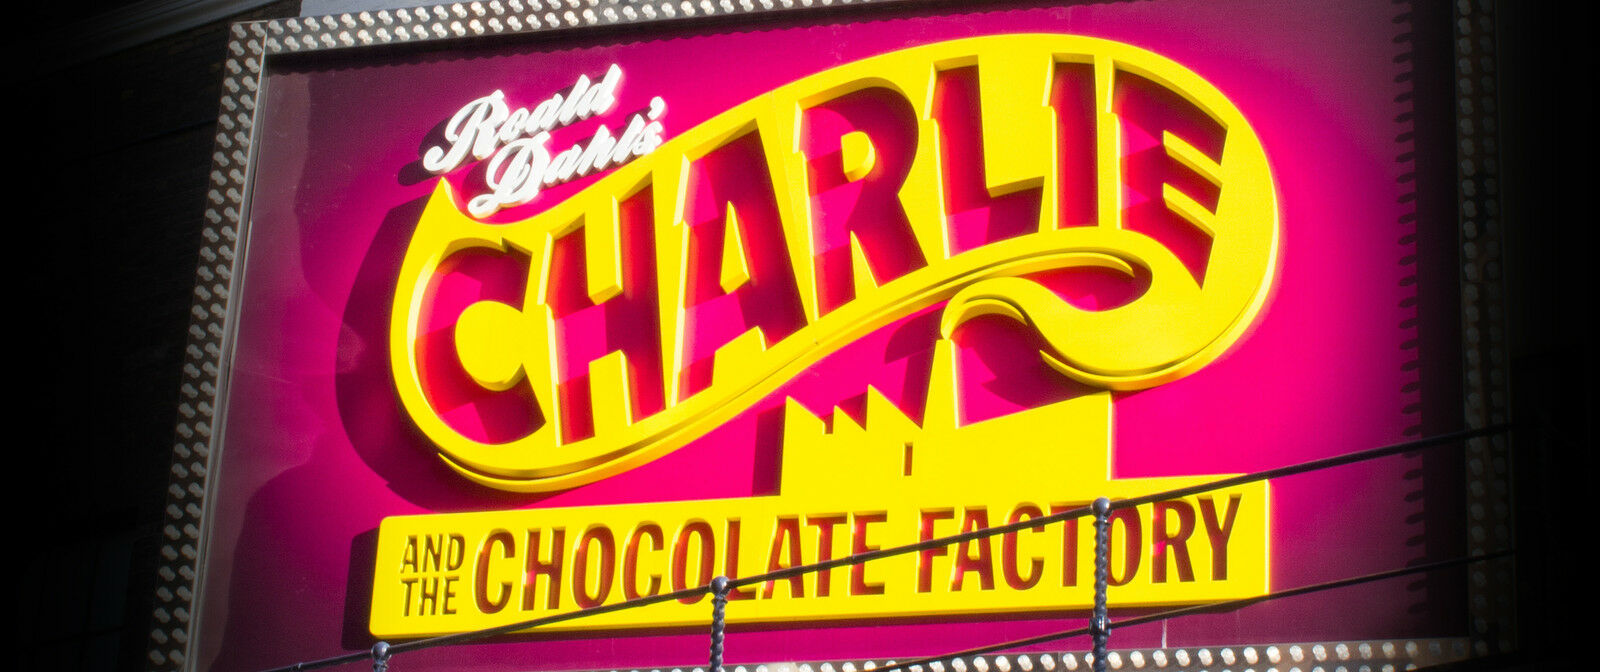 Charlie and the Chocolate Factory New York